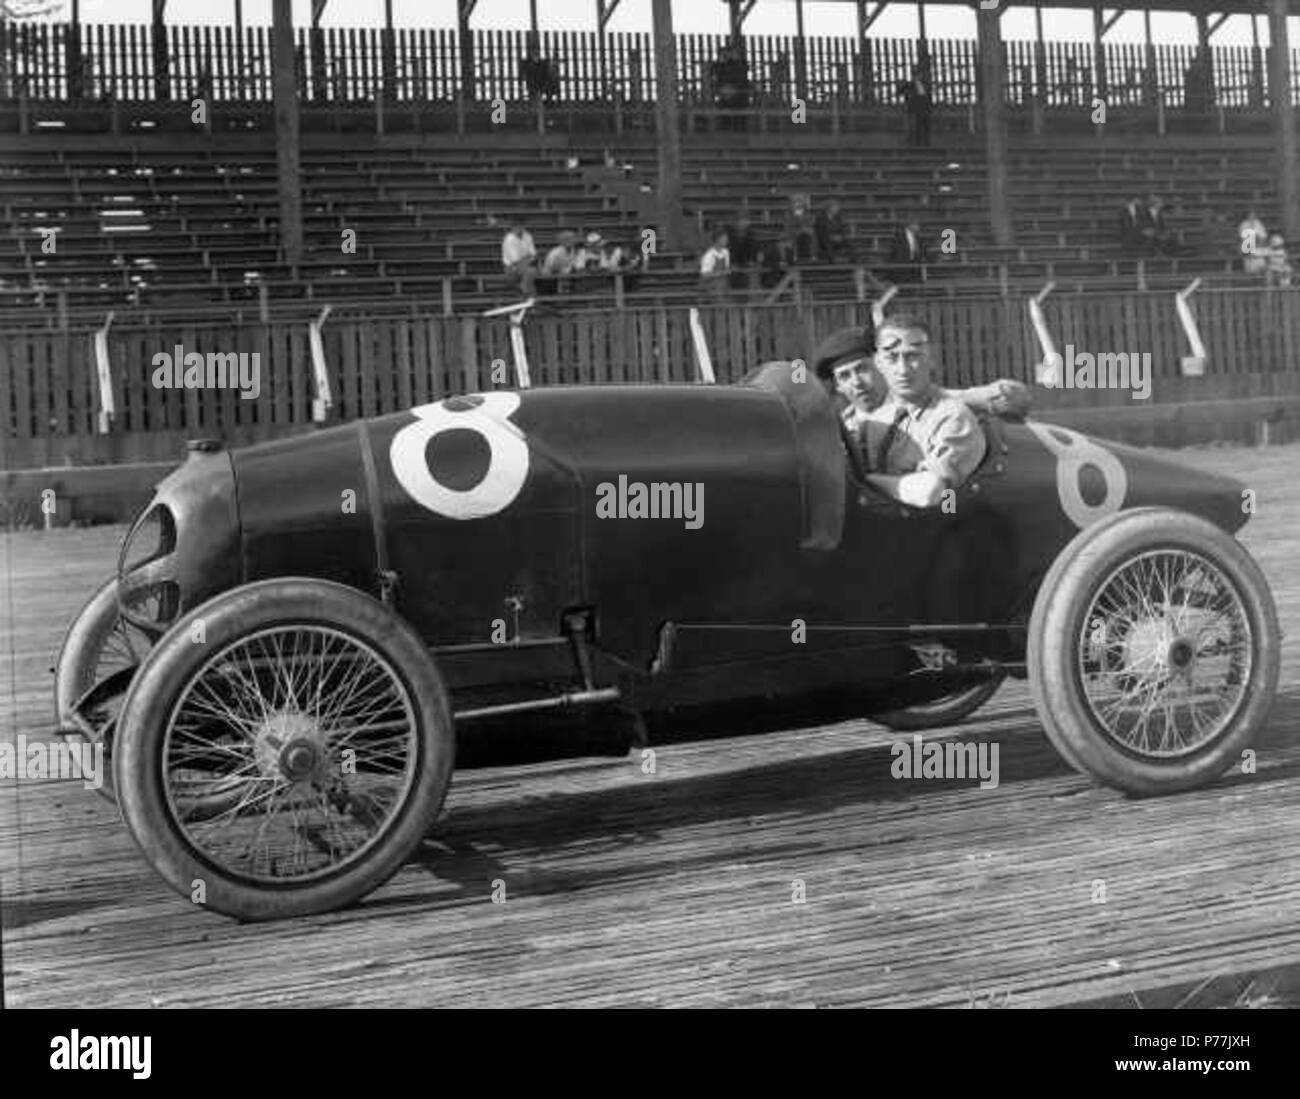 English: Auto racer Art Klein at the Tacoma Speedway. He is aboard the #8 Frontenac along with his riding mechanic, or 'mechanician,' S. McGarigle. Mr. Klein drove one of the two Frontenacs in the 1920 225-mile race at the Tacoma Speedway; the other was helmed by Chicago millionaire Joe Boyer, Jr. The Speedway had been spruced up with large new grandstand (shown above), fences, pits, water tower, renewed board track and three automobile entrances for spectators. Top drivers including Cliff Durant, Ralph DePalma, Tommy Milton, Roscoe Sarles and Ralph Mulford made the long trek to Washington to  - Stock Image